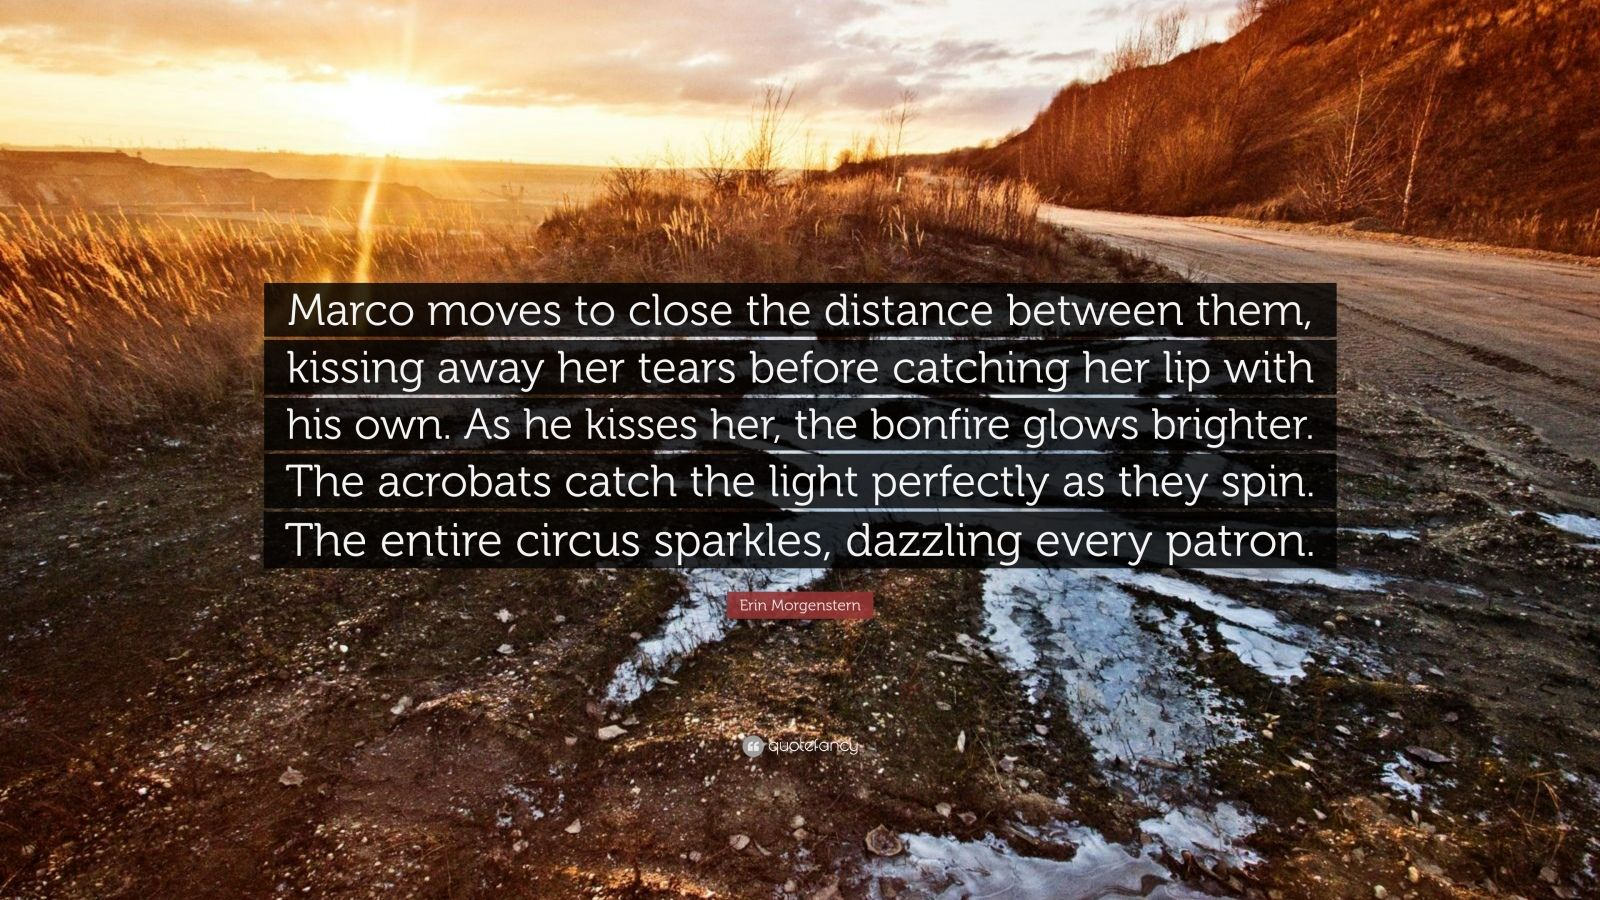 """Erin Morgenstern Quote: """"Marco moves to close the distance between them, kissing away her tears before catching her lip with his own. As he kisses her, the bonfire glows brighter. The acrobats catch the light perfectly as they spin. The entire circus sparkles, dazzling every patron."""""""